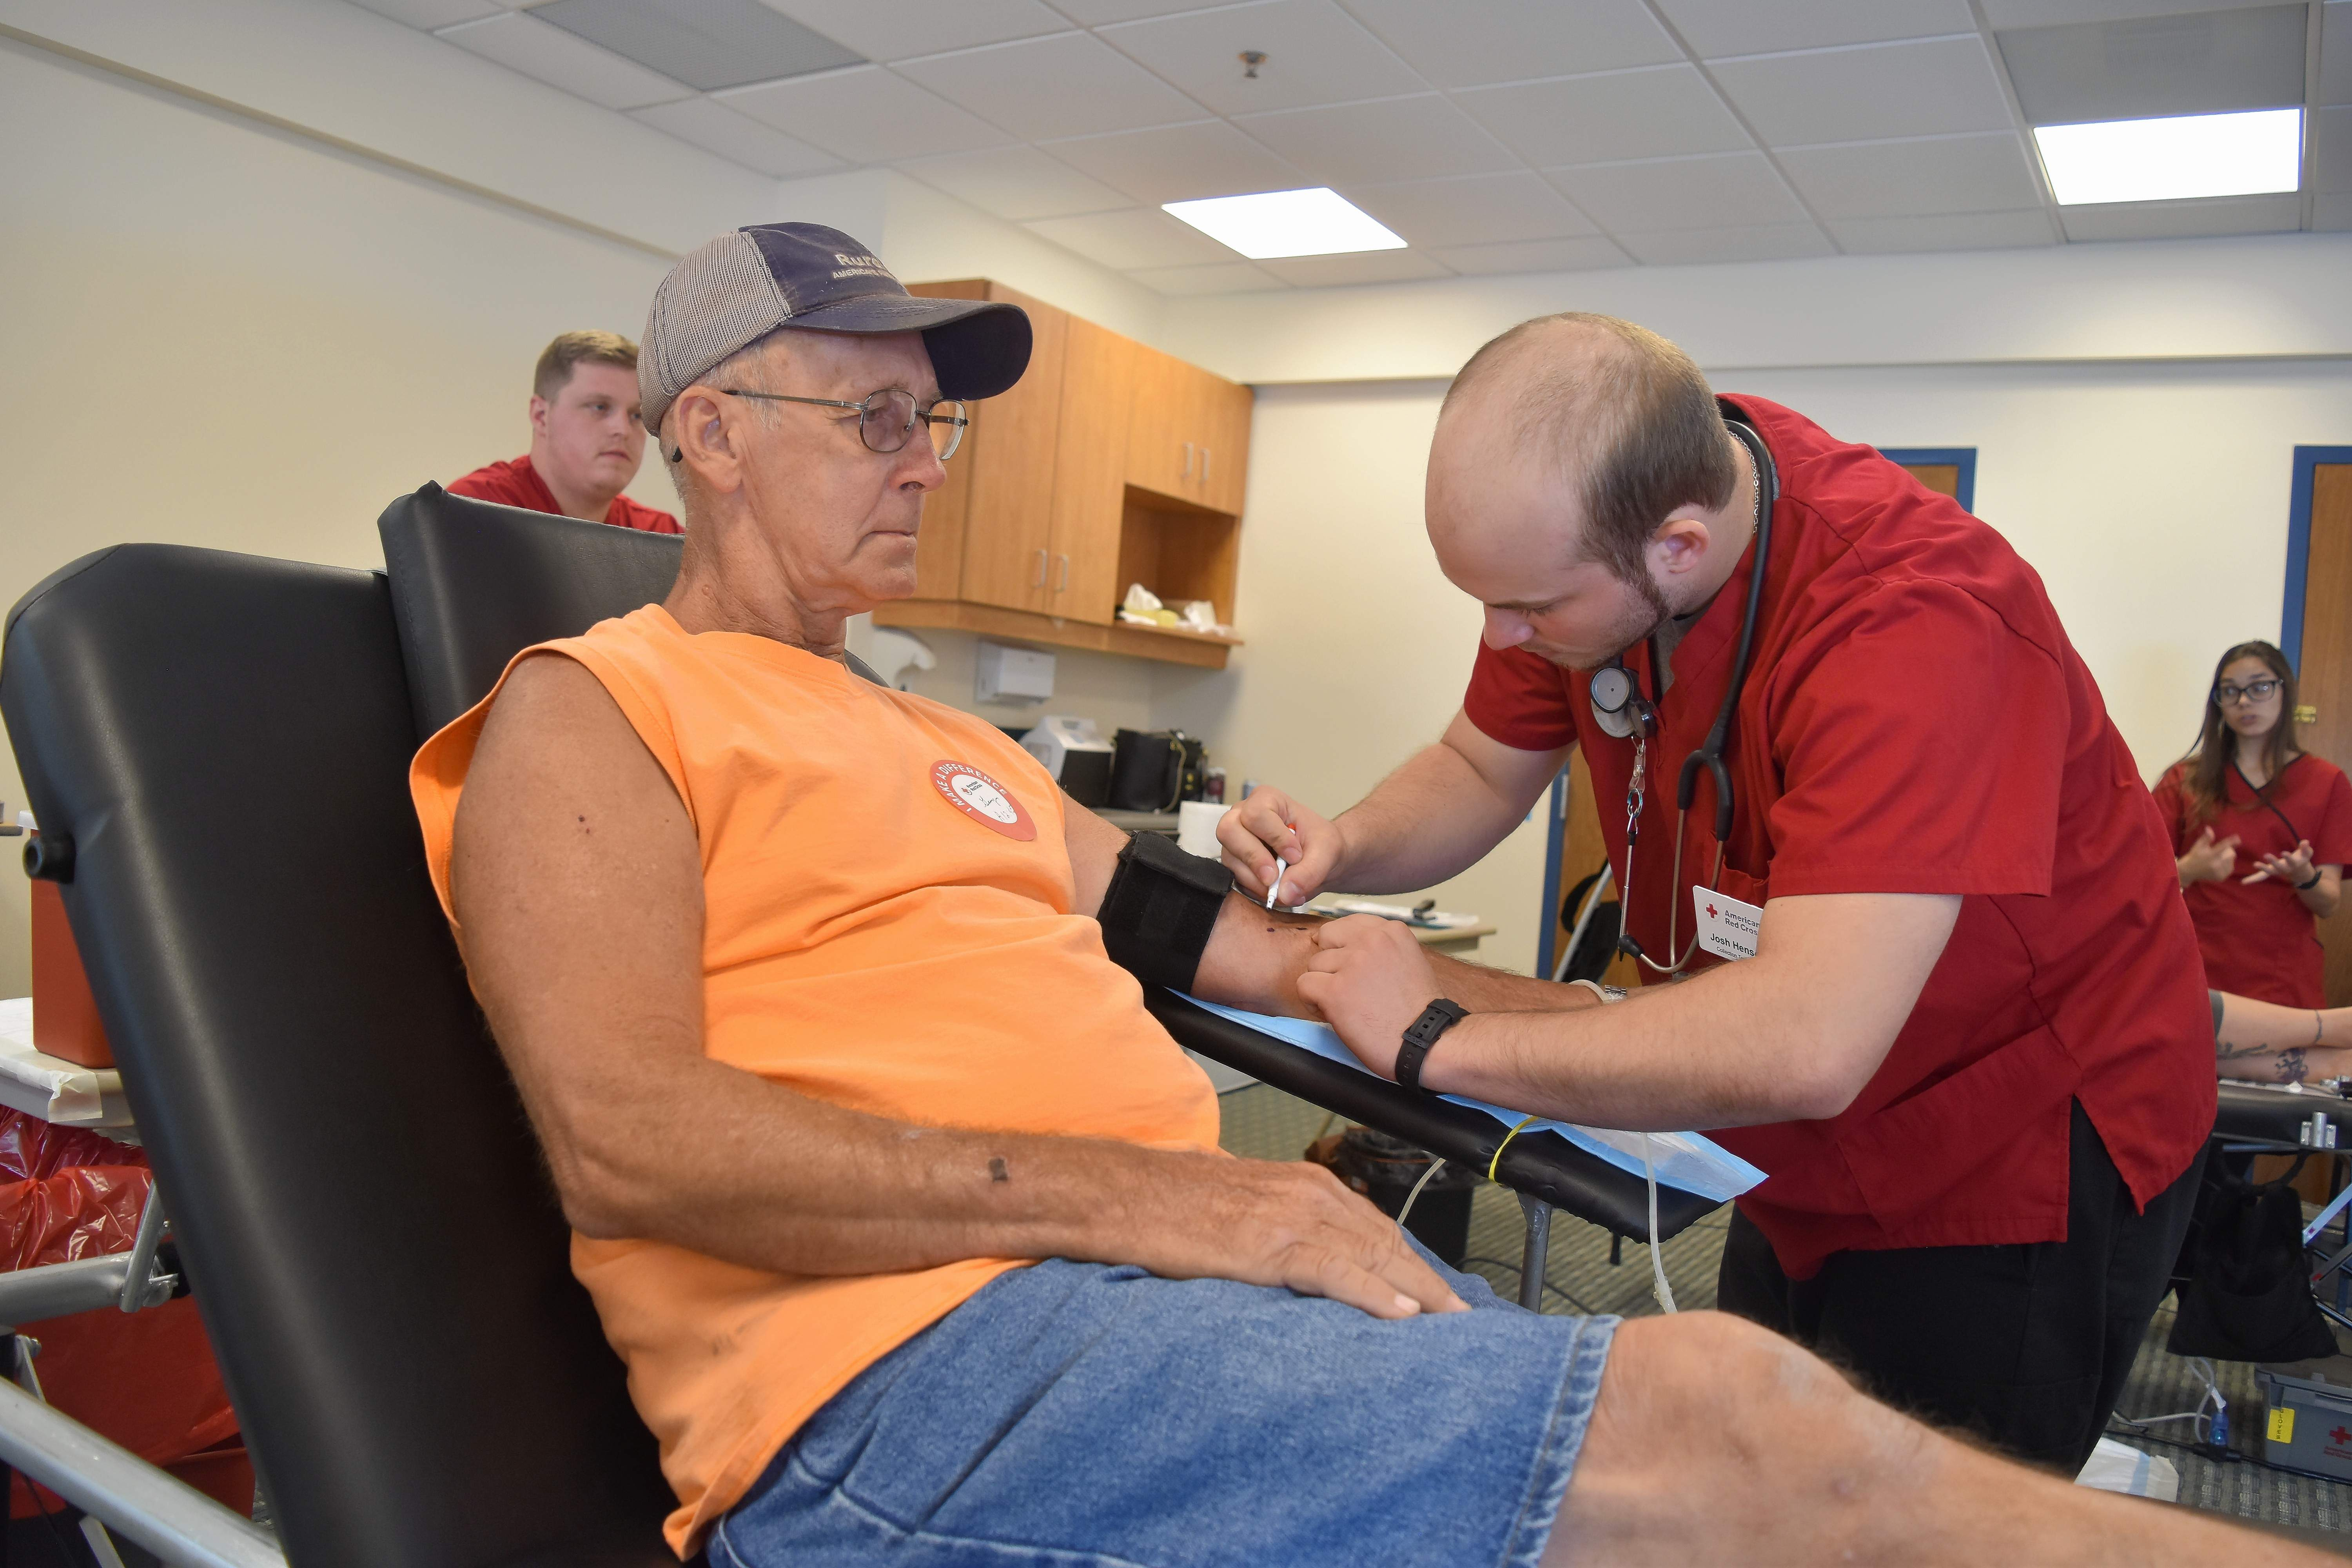 Gary Korbar of Du Quoin took time out of his day to donate a pint of blood at Thursday's drive hosted by Marshall Browning Hospital. Korbar says he donates every three months, and has done so for the last three years. Preparing to draw his blood is Josh Henson, a phlebotomist with the American Red Cross.